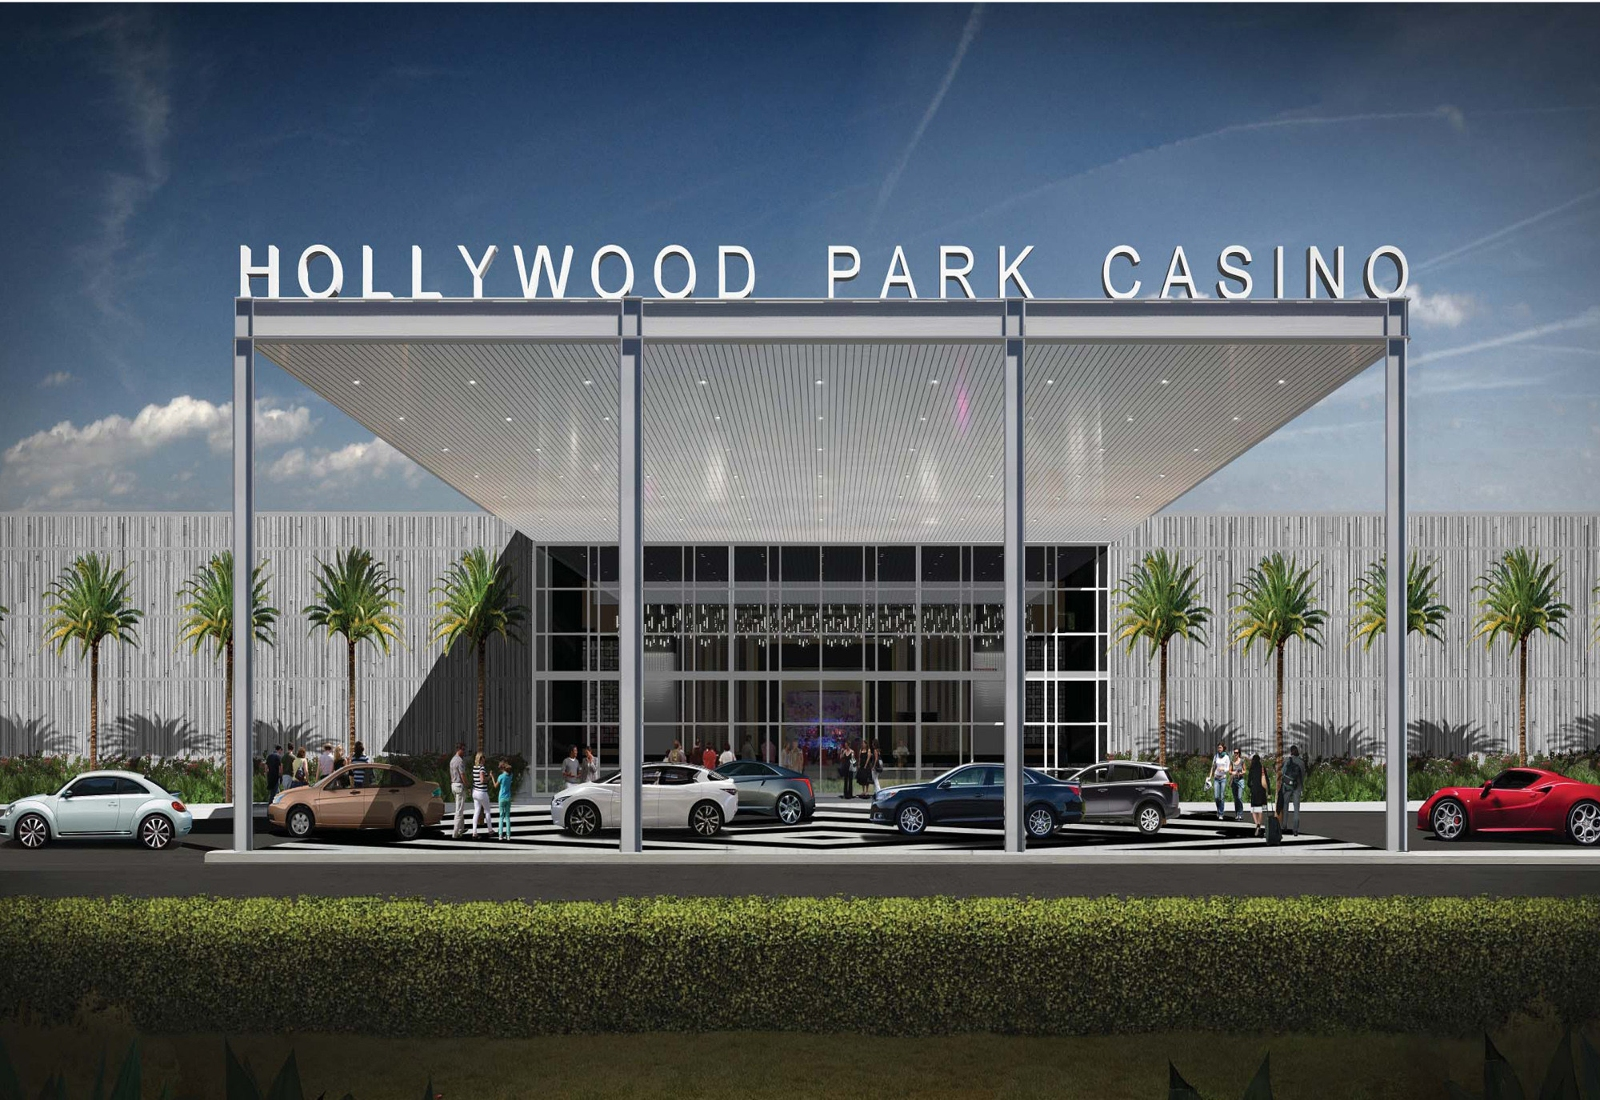 Hollywood park casino inglewood seminole casino coconut